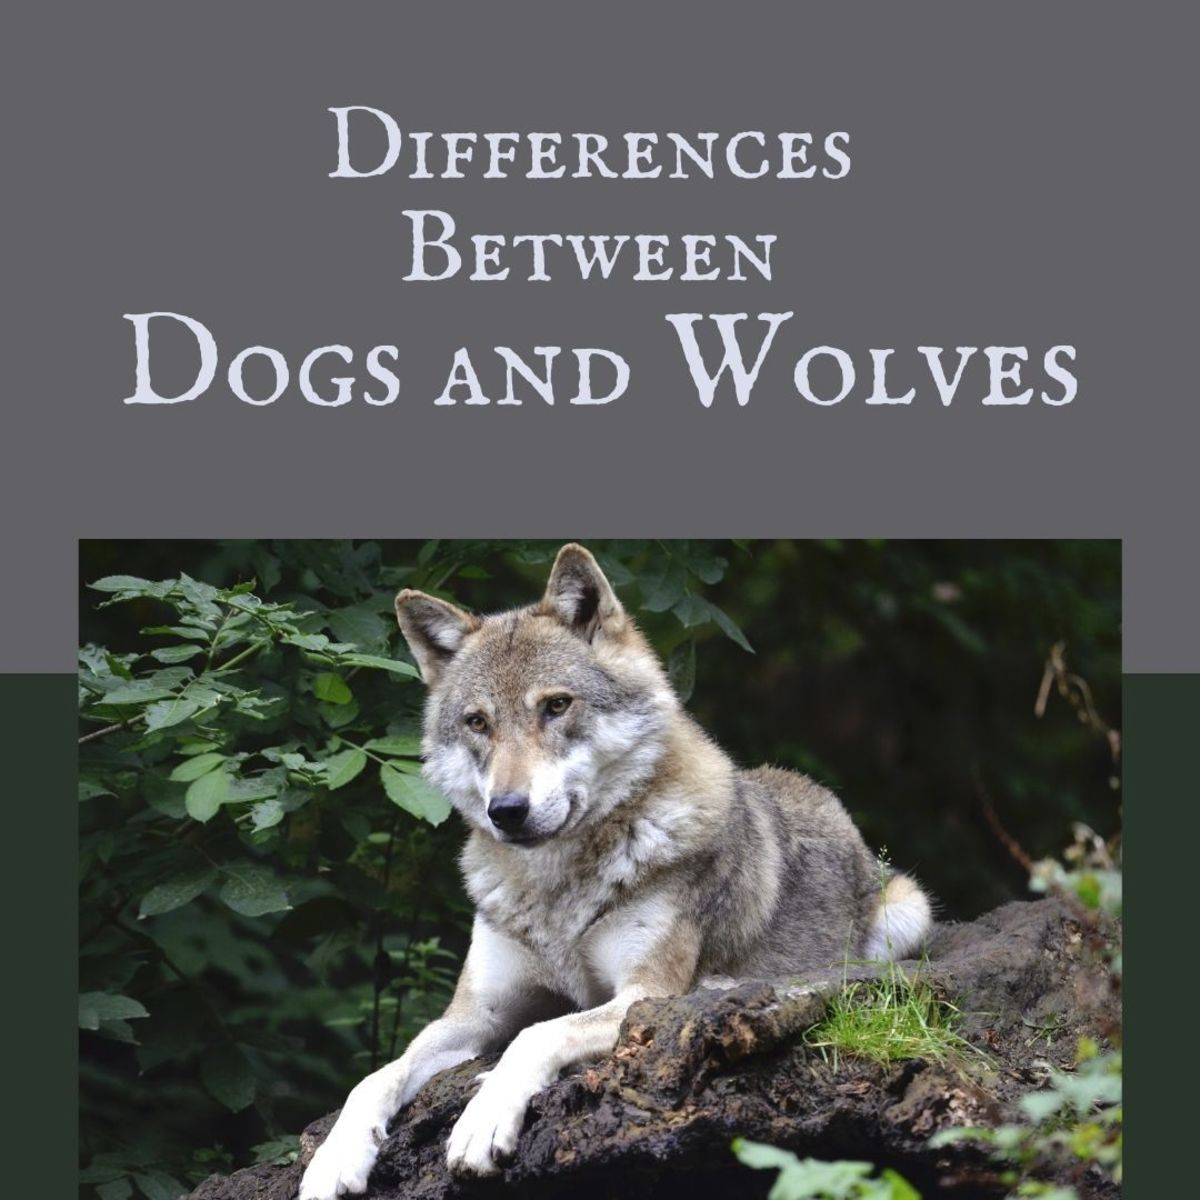 How did dogs evolve from wolves? What are the differences between dogs and wolves?